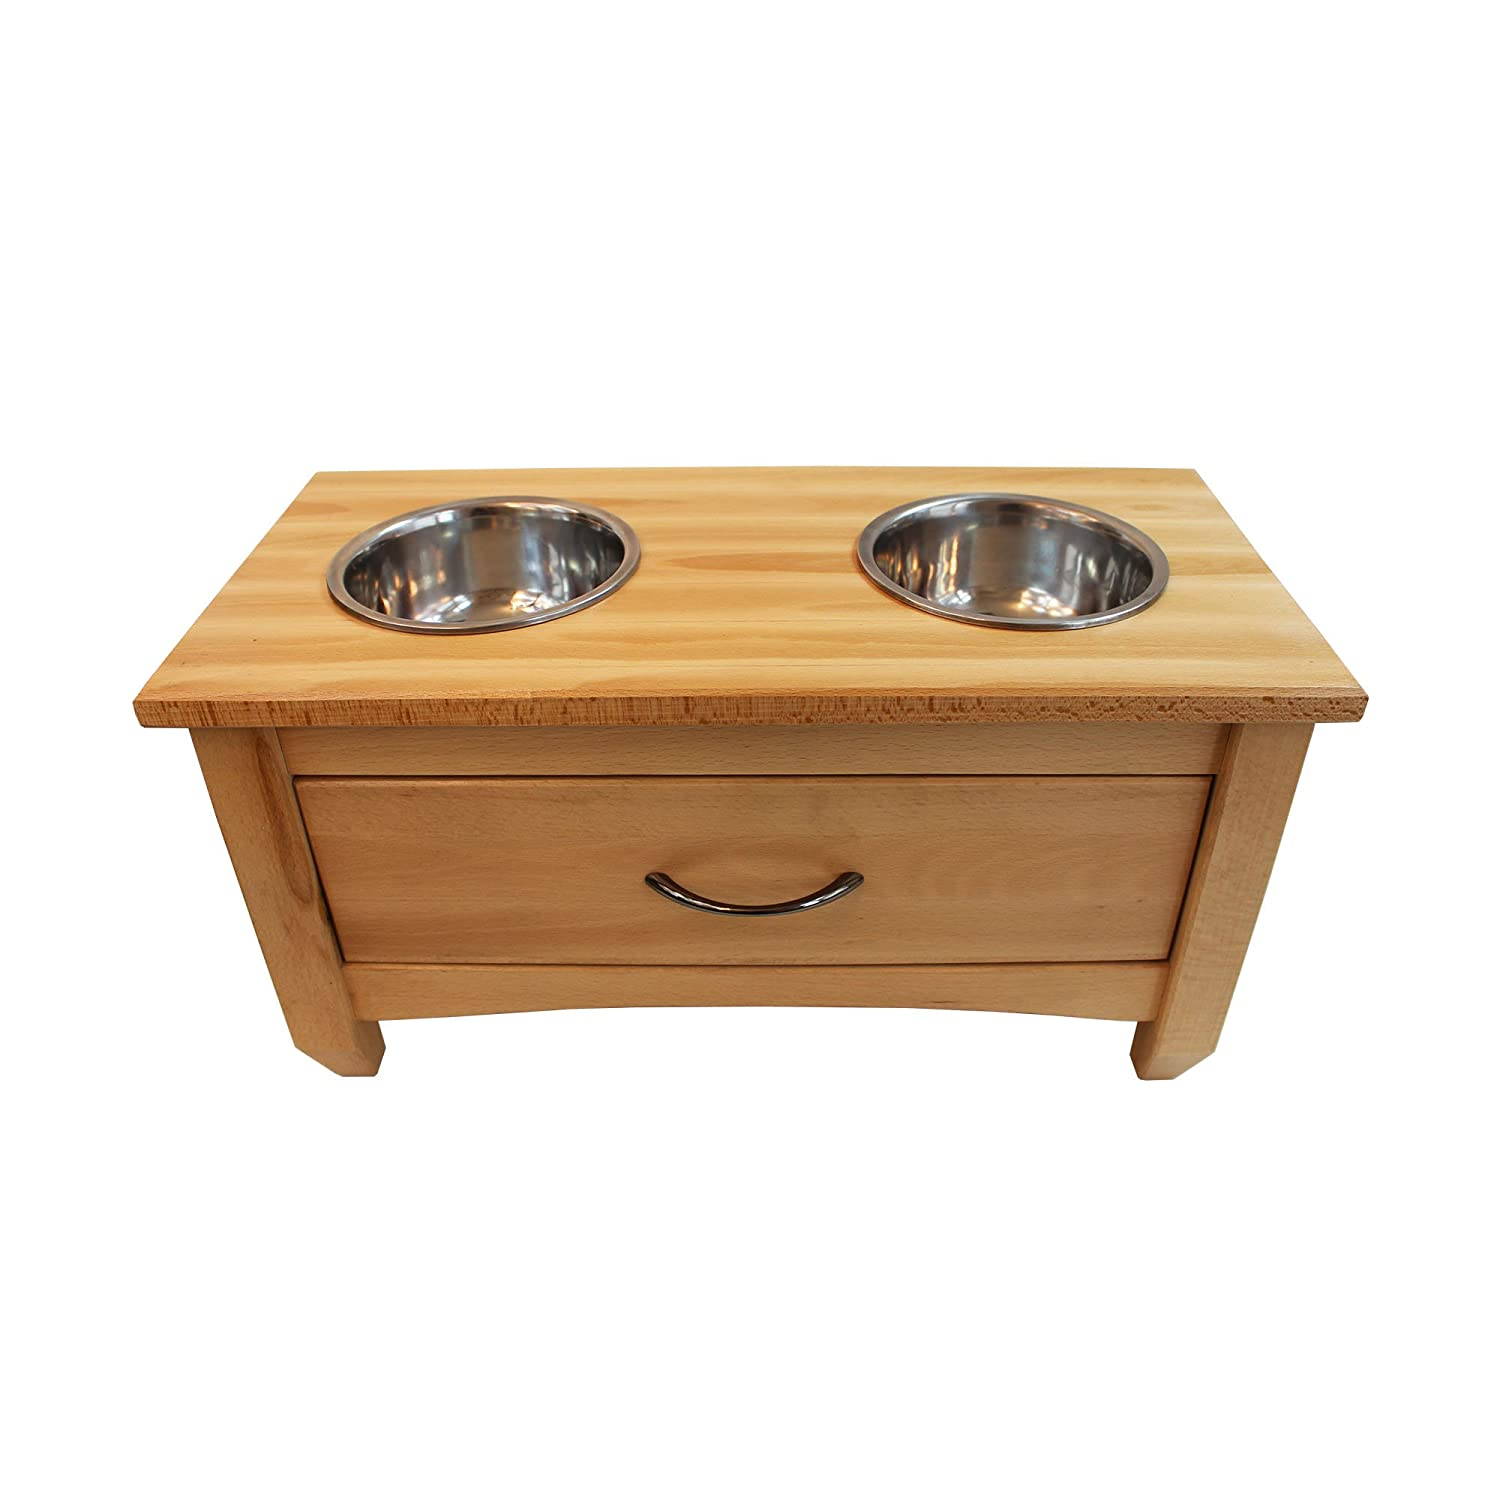 Obique Pets Collection Wooden Raised Double Bowl Feeding Station With Drawer for Storage, Natural Large (30 cm High)